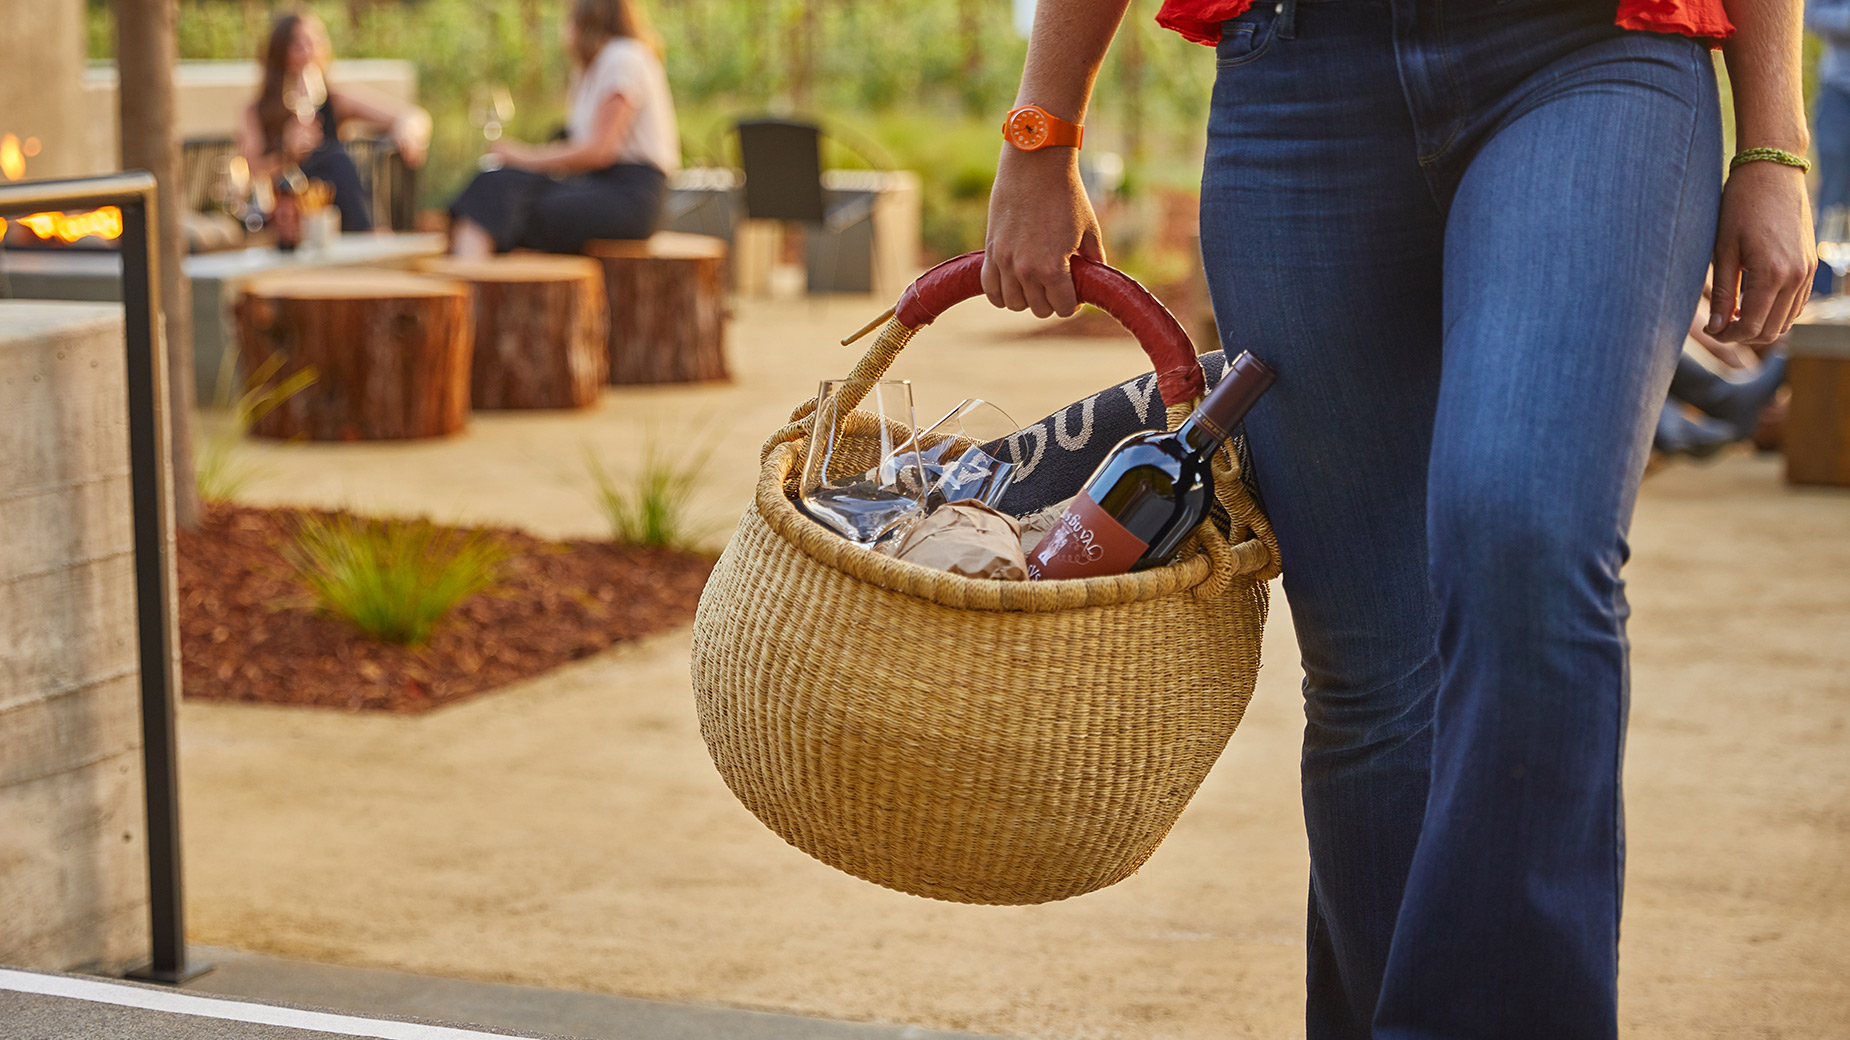 Clos-Du-Val-Basket Lifestyle in Napa Valley